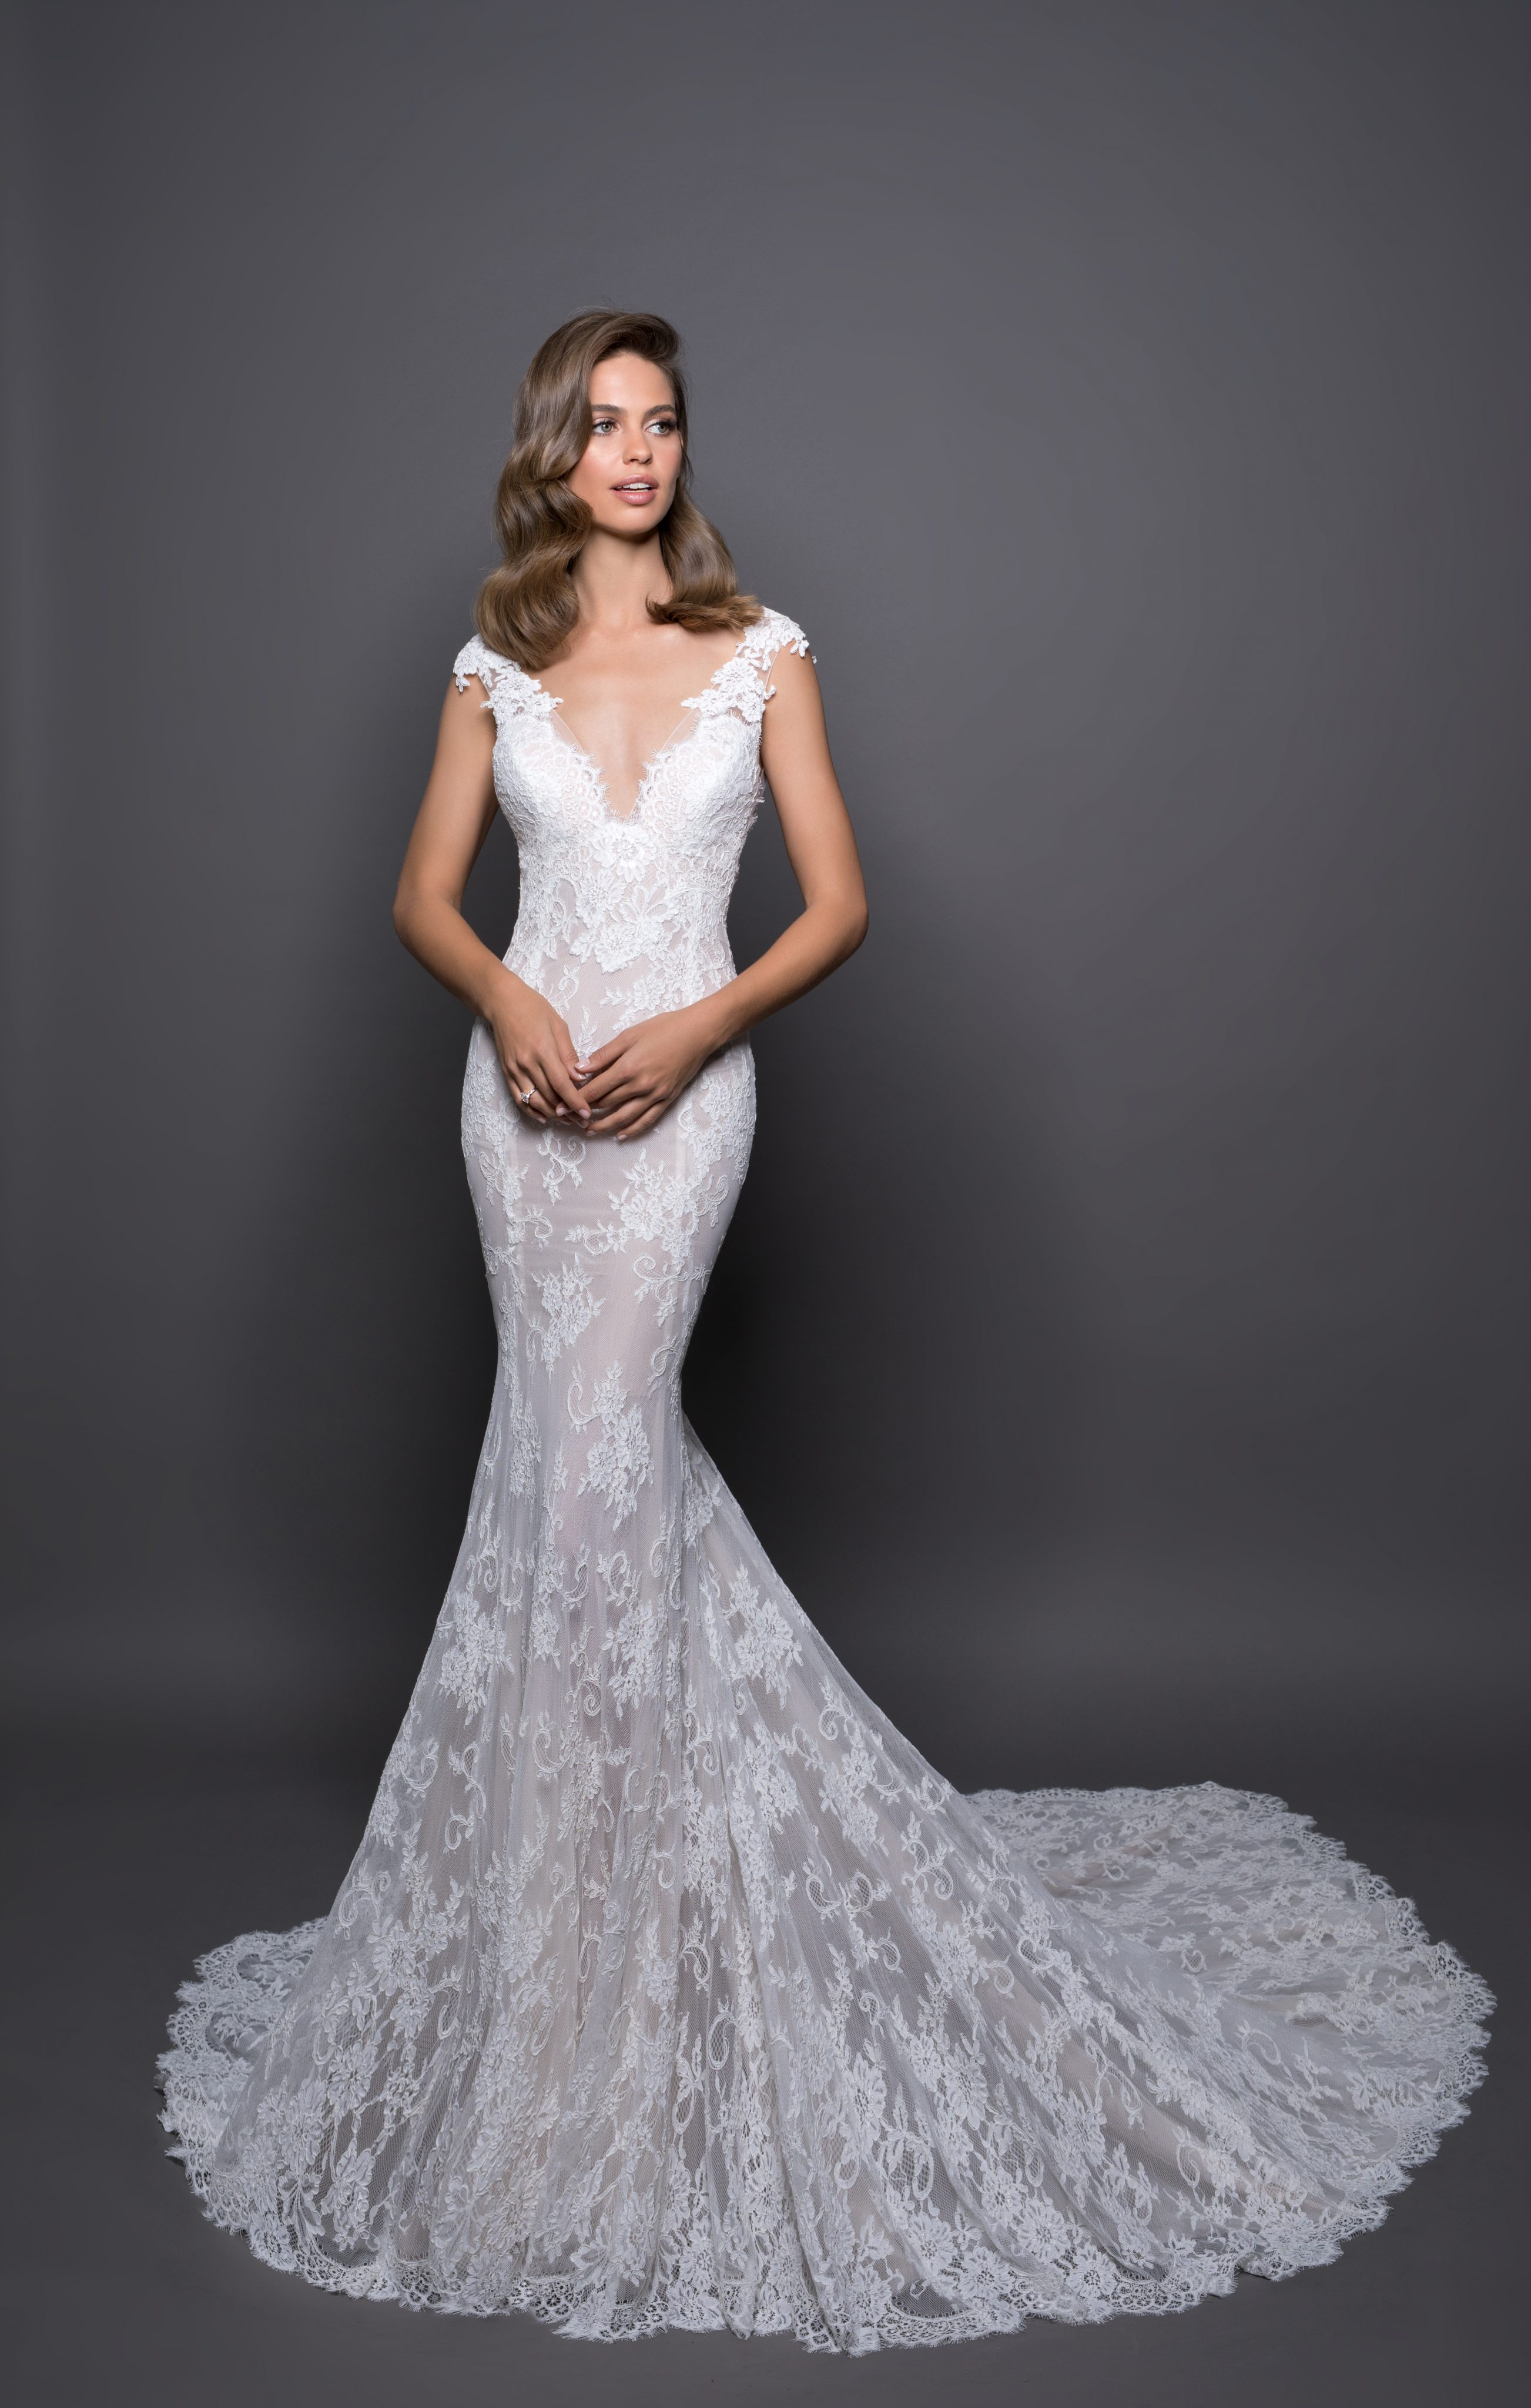 Romantic Sheath Wedding Dress Kleinfeld Bridal